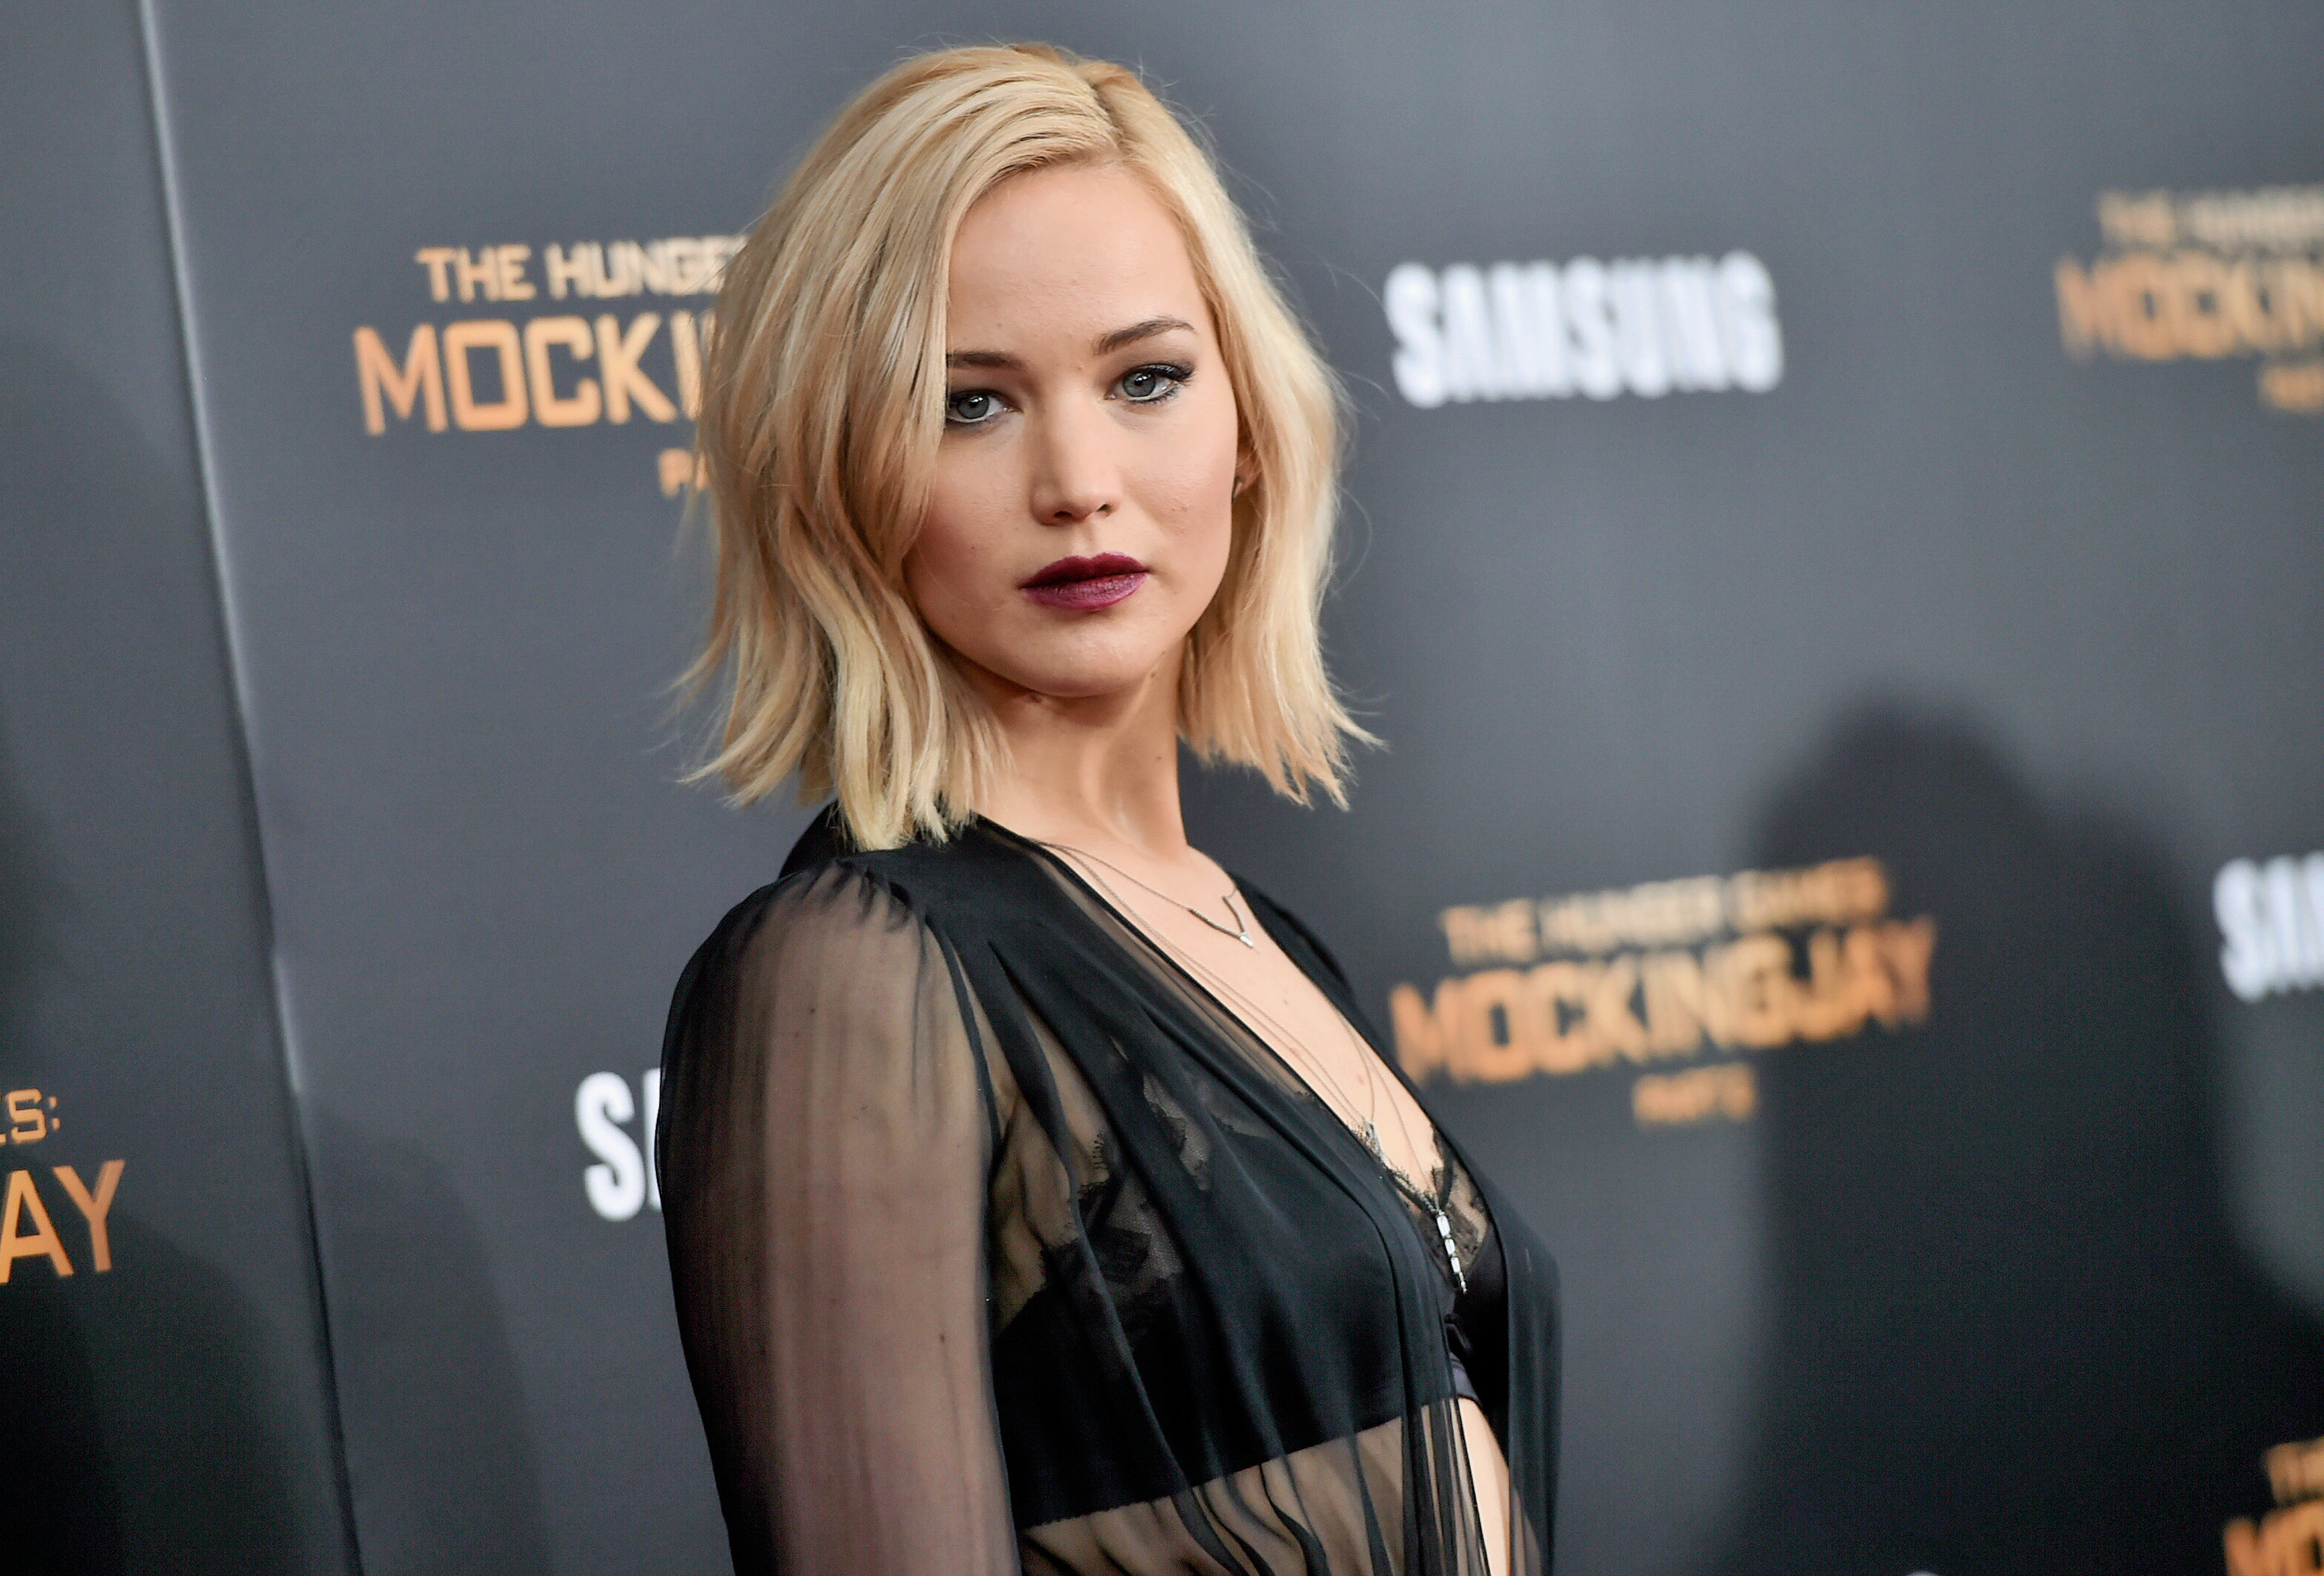 Jennifer Lawrence plans to direct a comedy, signs on for Project Delirium